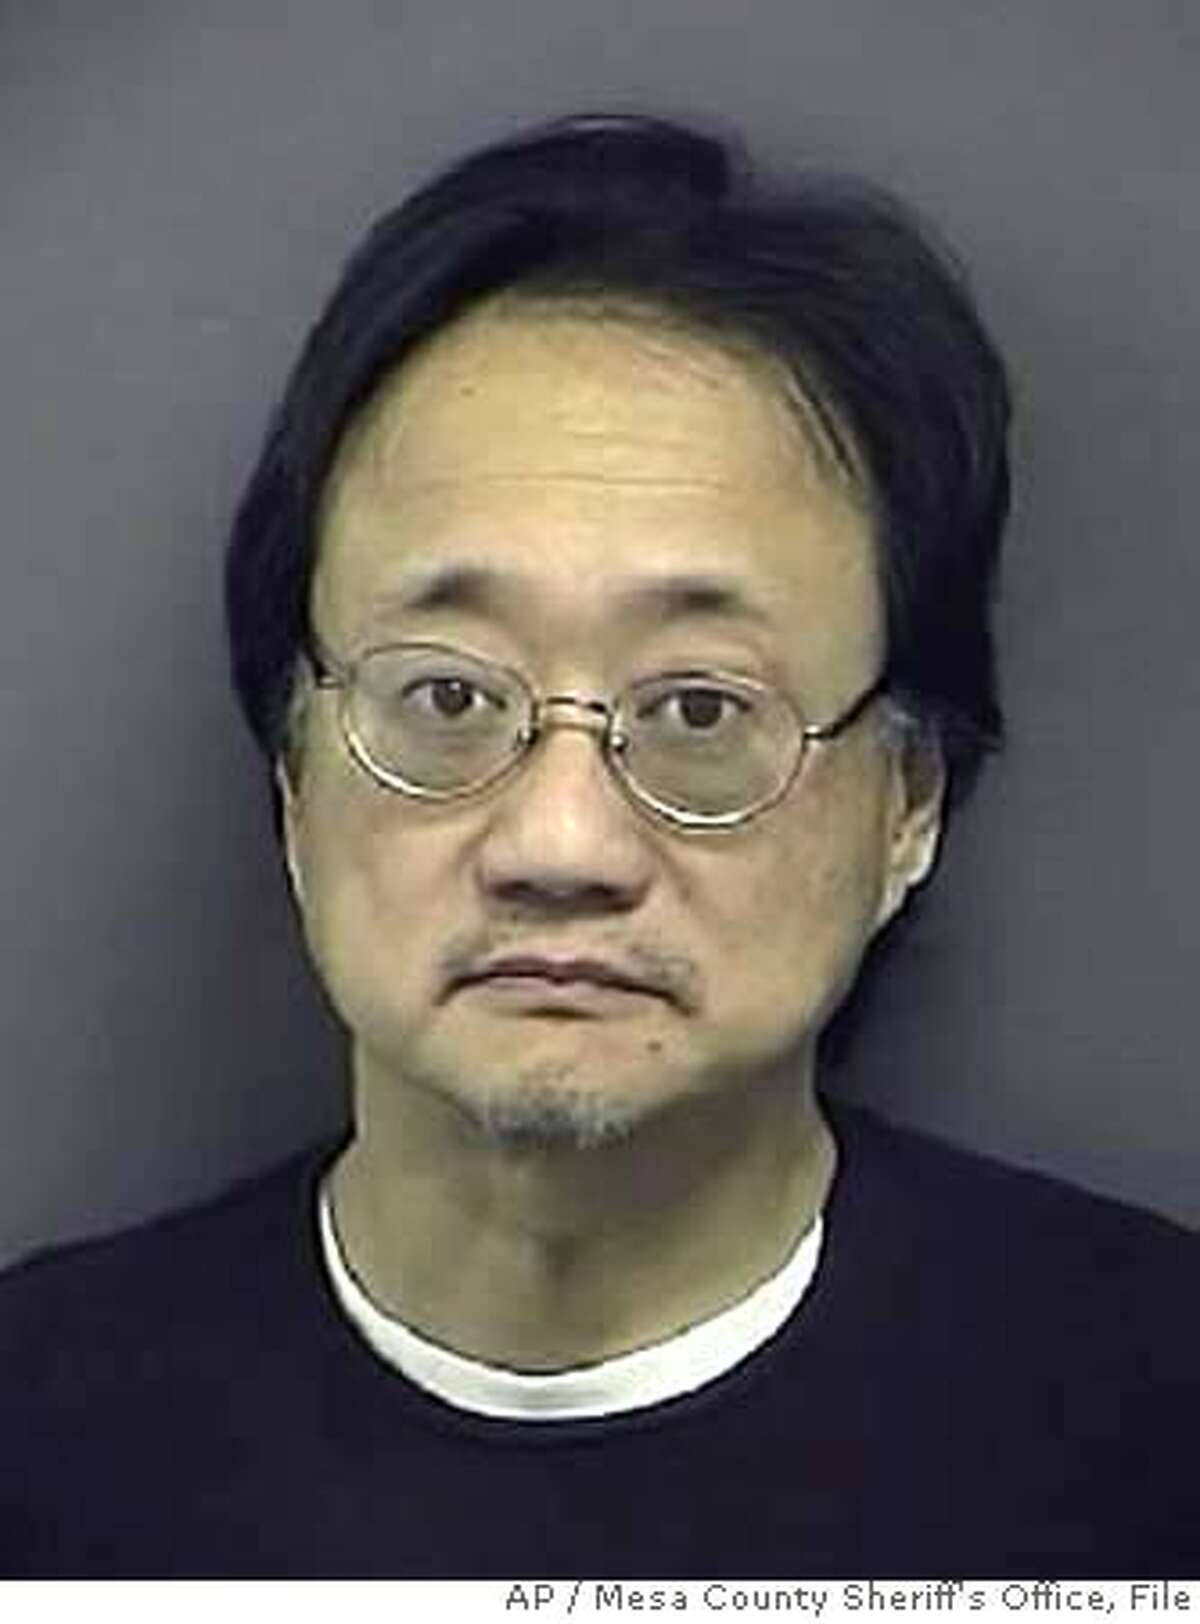 An undated photo provided by the Mesa County Sheriff's Office shows Norman Hsu, a fundraiser who is under guard in a Colorado hospital after failing to show up for a bail hearing last week in California. He had been wanted as a fugitive for missing his sentencing on a 1991 grand theft case to which he had pleaded no contest. (AP Photo/Mesa County Sheriff's Office) UNDATED PHOTO PROVIDED BY MESA COUNTY SHERIFF'S OFFICE